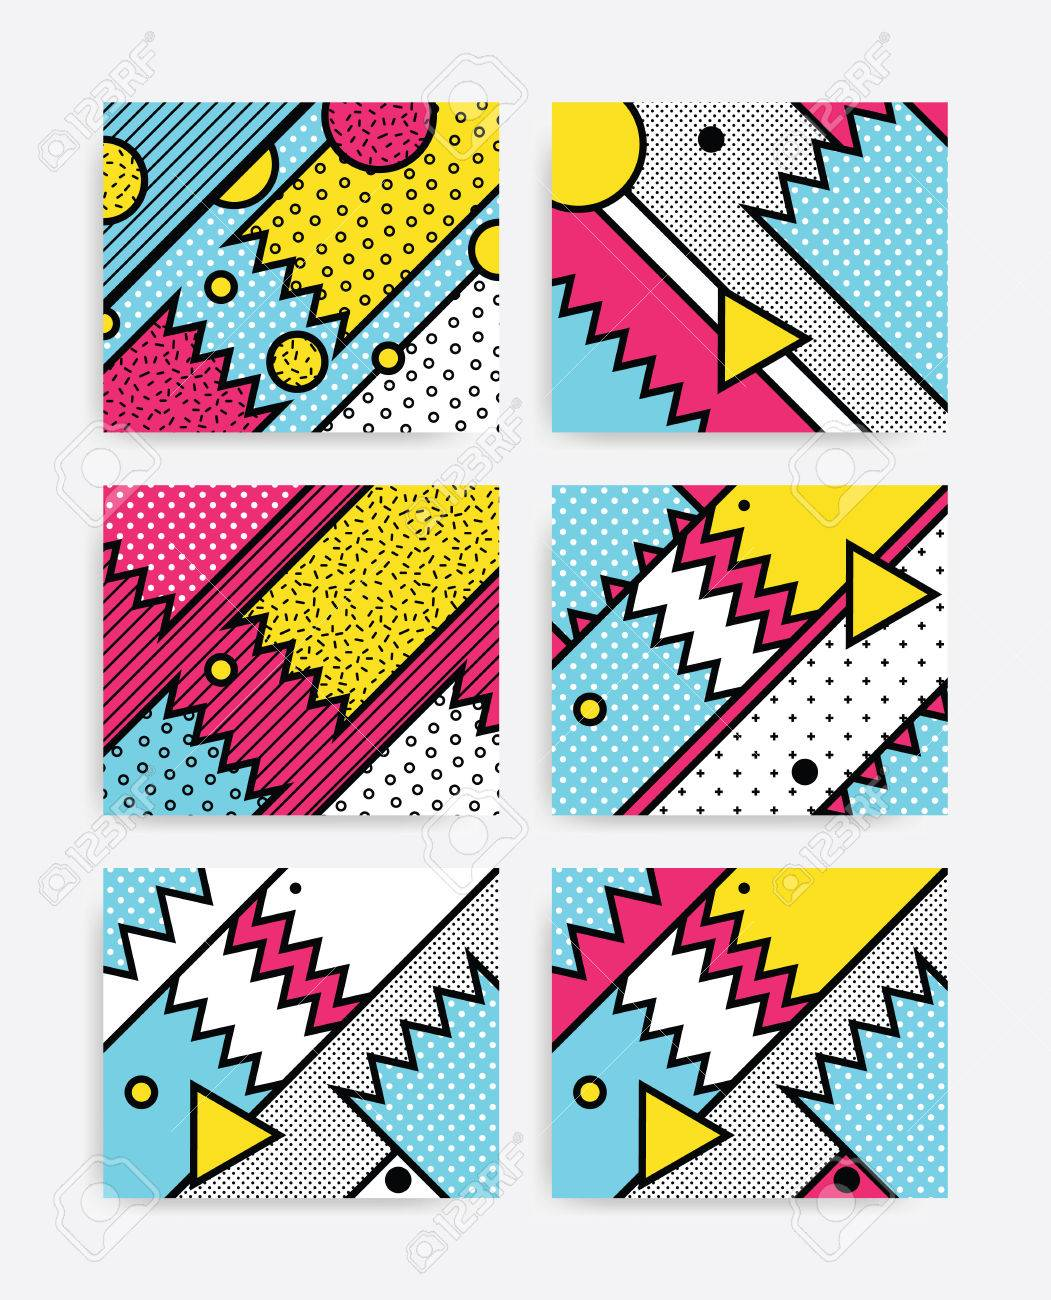 Colorful Pop art geometric pattern set with bright bold blocks. Colorful Material Design Background in Pink Yellow Blue Black and White. Prospectus, poster, magazine, broadsheet, leaflet, book Banque d'images - 67643597